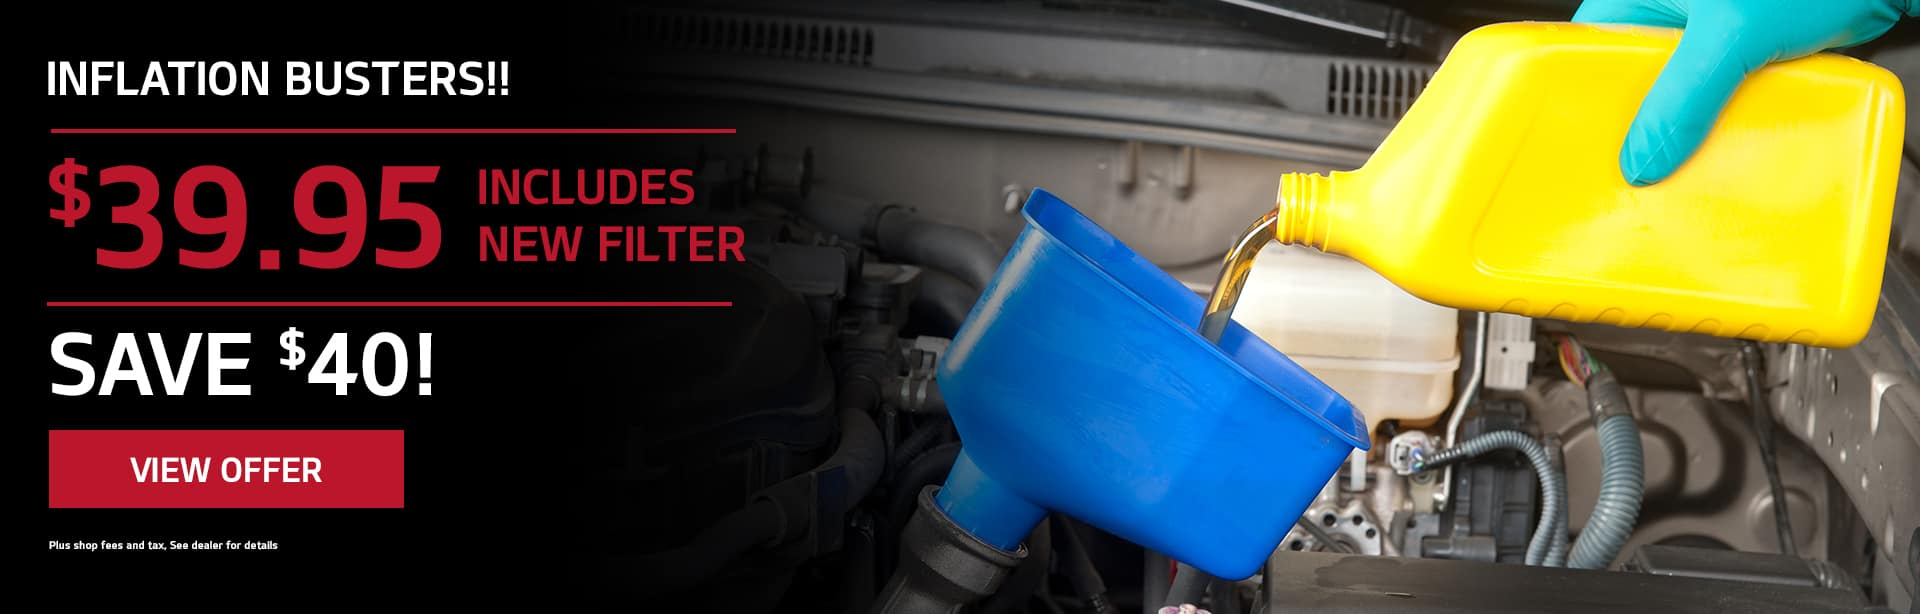 INFLATION BUSTERs !! NOW Full Synthetic Oil Change $39.95 includes new filter Subtext: Save $40 !!